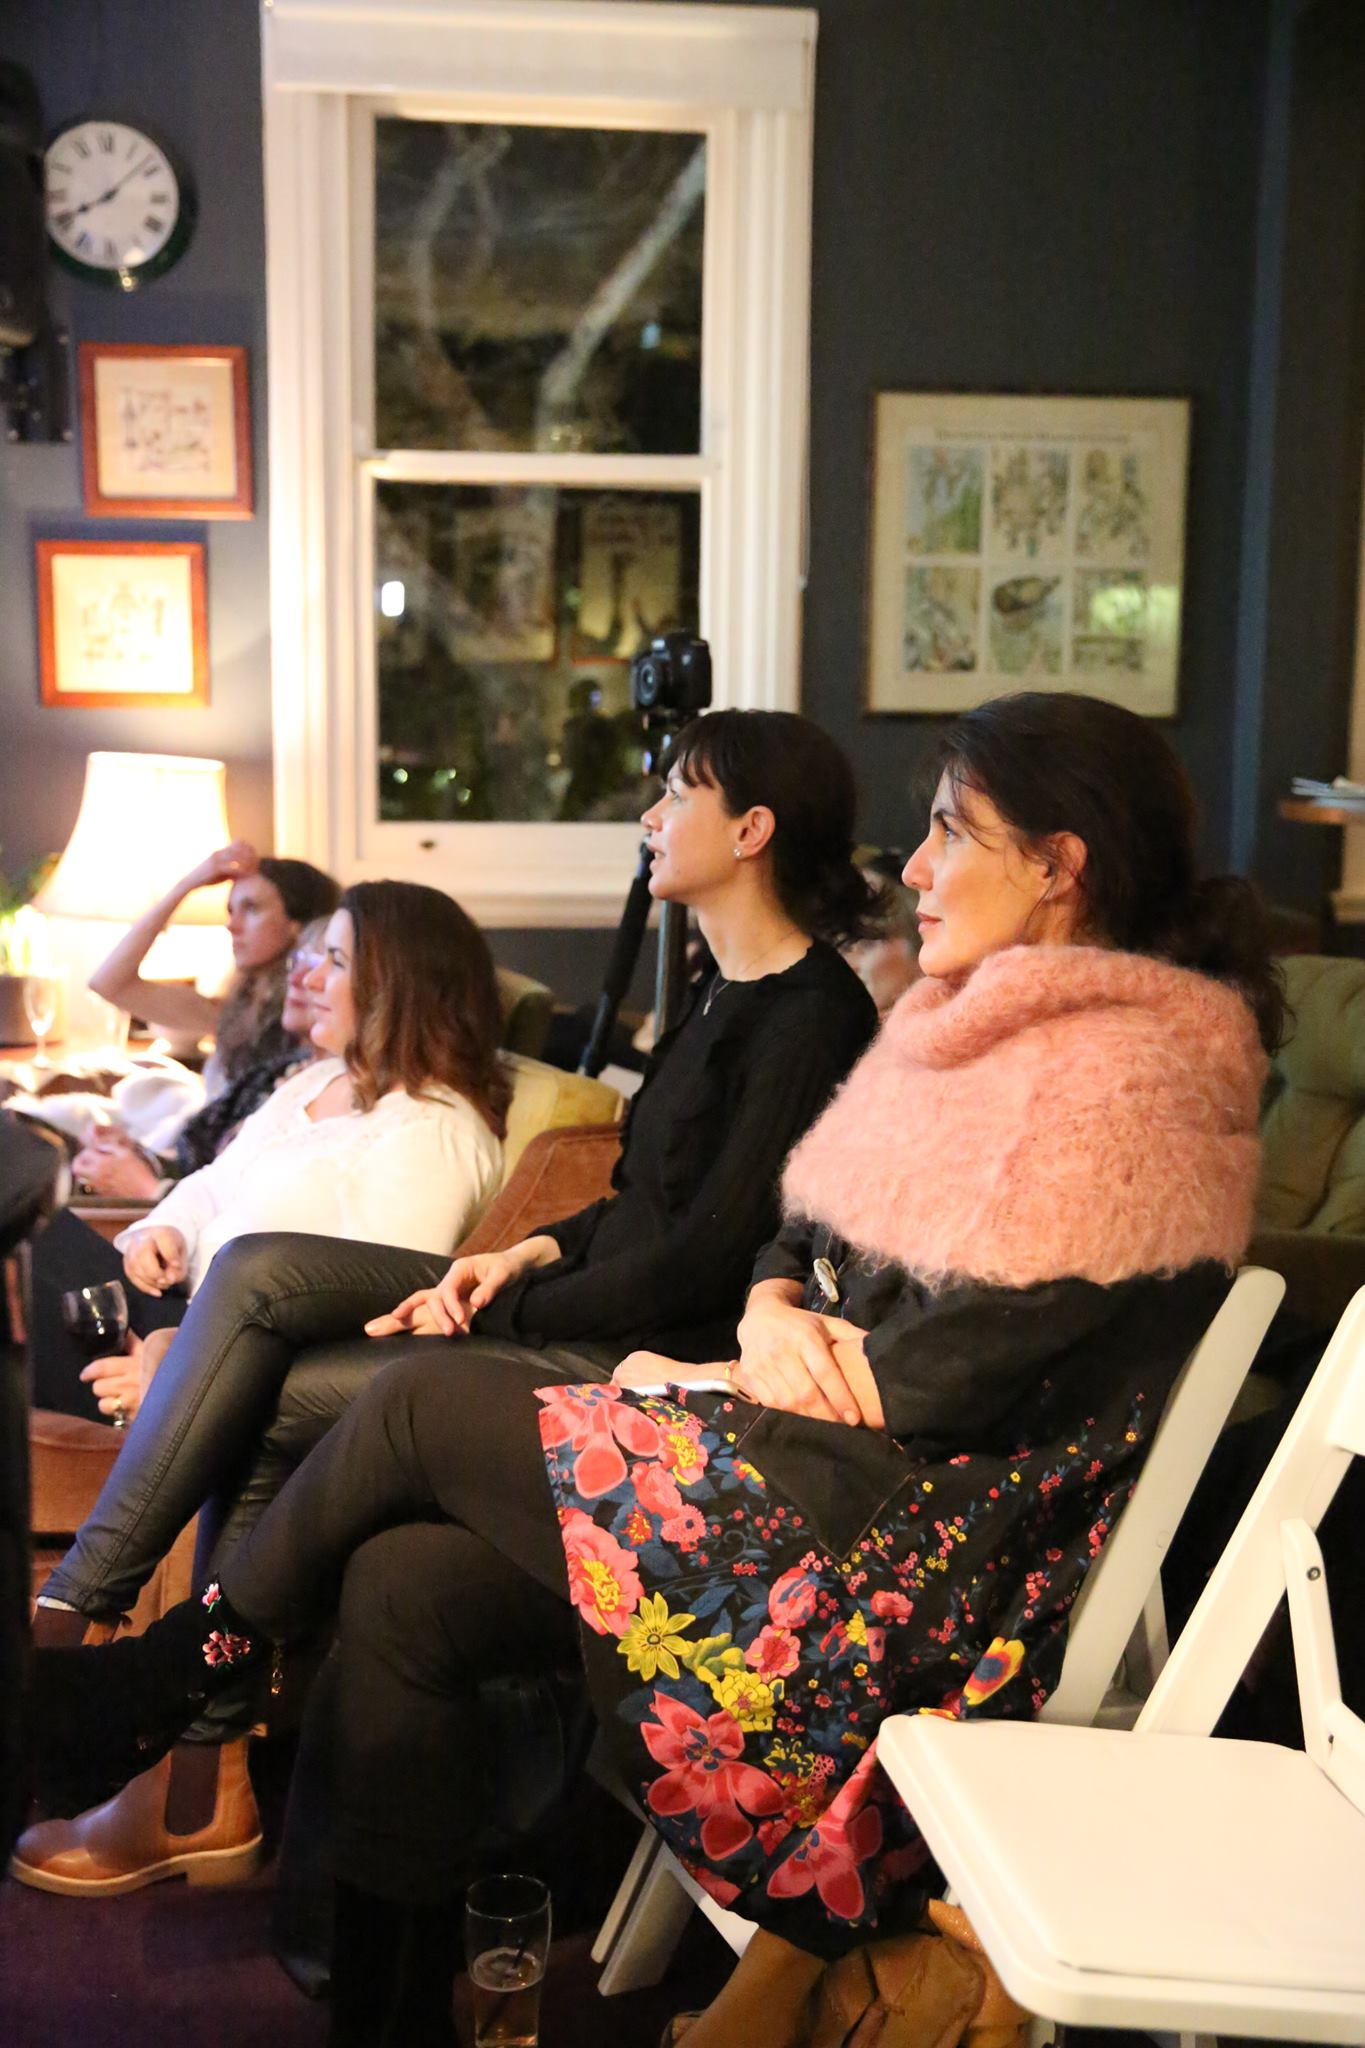 Captivated by our fabulous featured evening presenter, Emma Veiga-Malta.